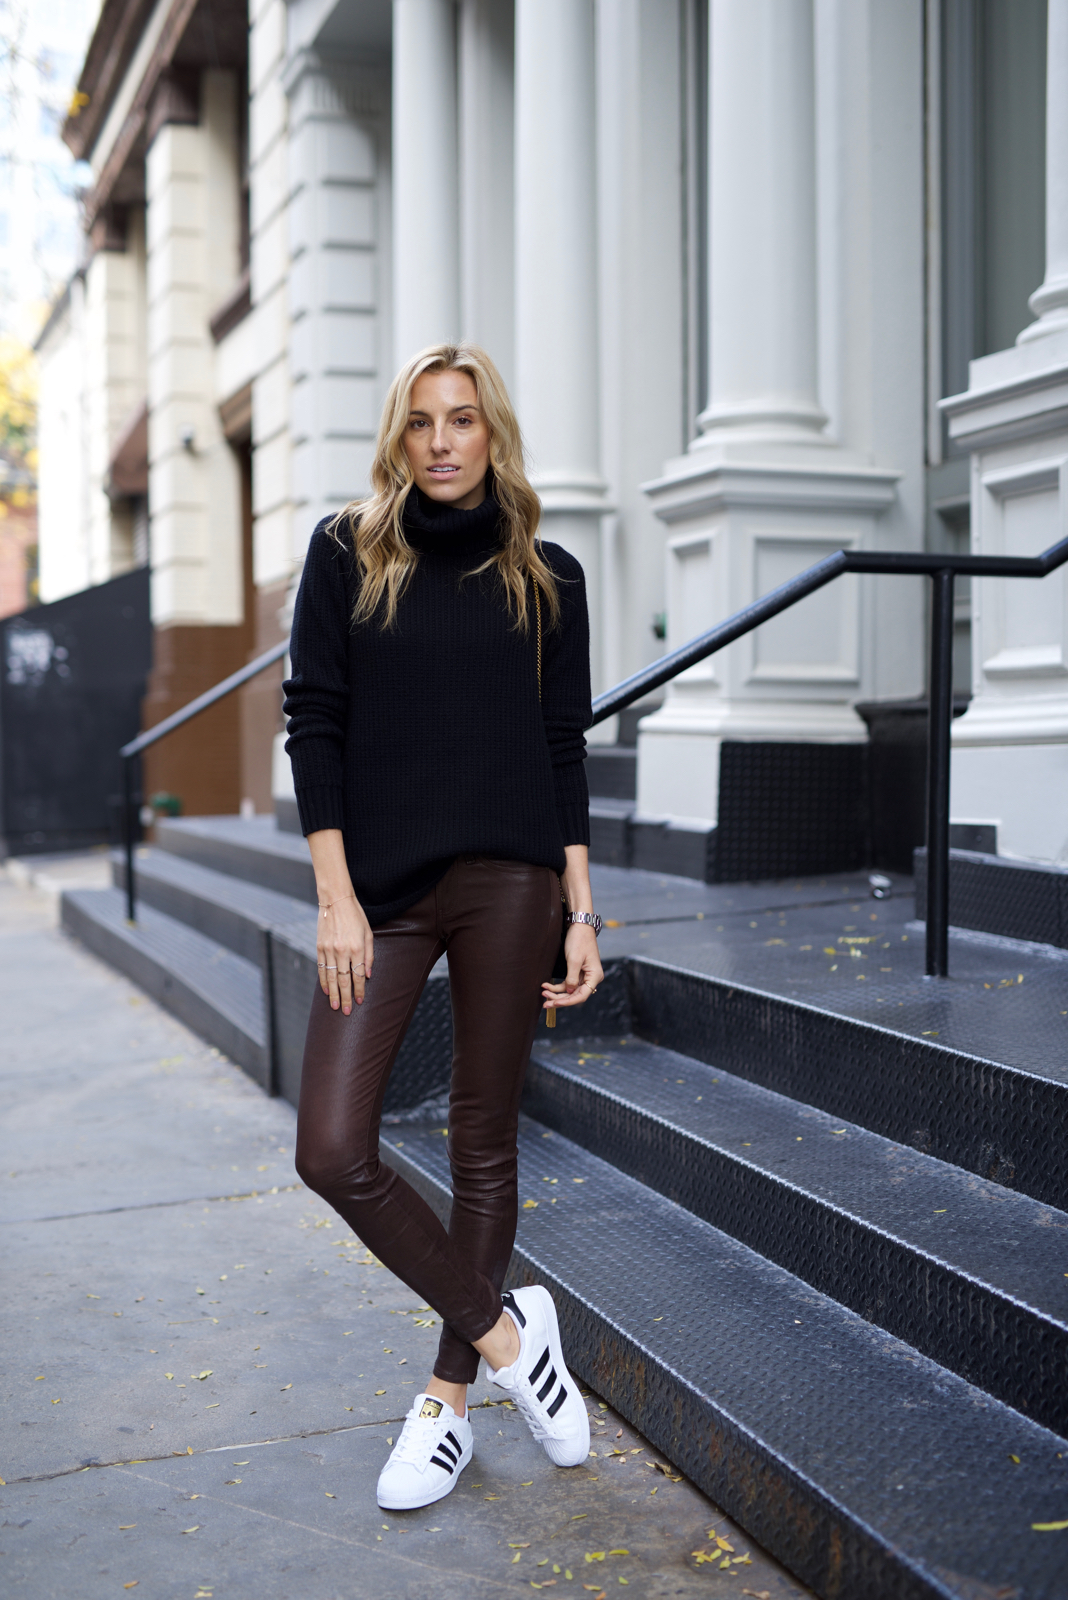 Must-have leather pants, Holiday gift guide, Black Friday, Saint Laurent Velvet bag